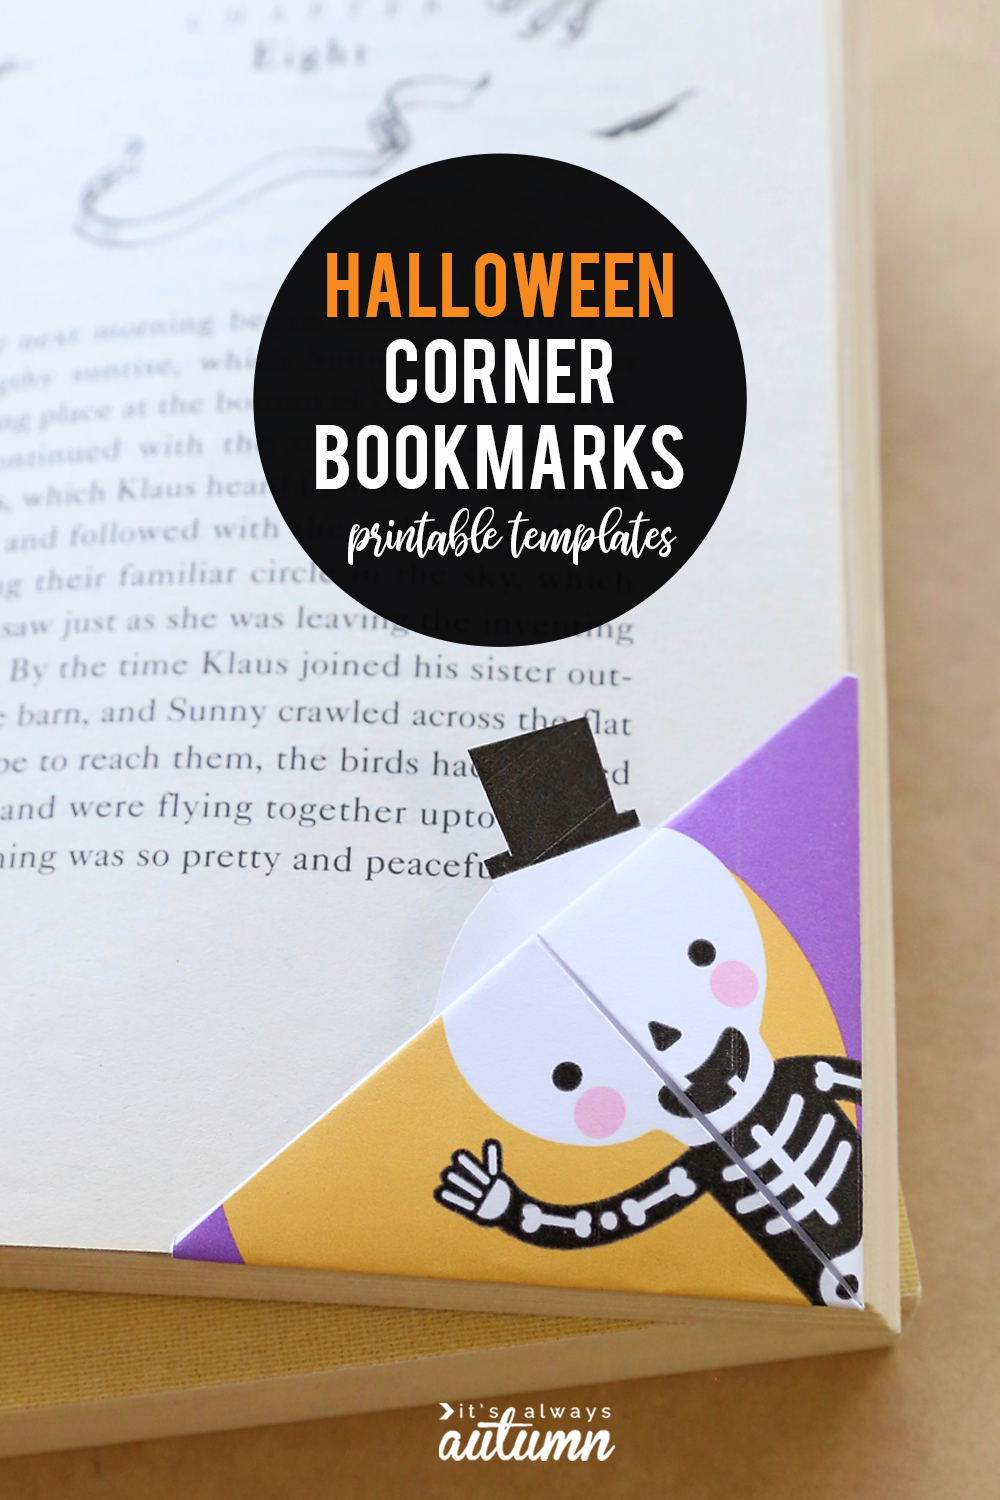 These Halloween bookmarks are a fun, easy, and cheap Halloween craft for kids. Just print the template, cut it out, and fold for a cute corner bookmark.